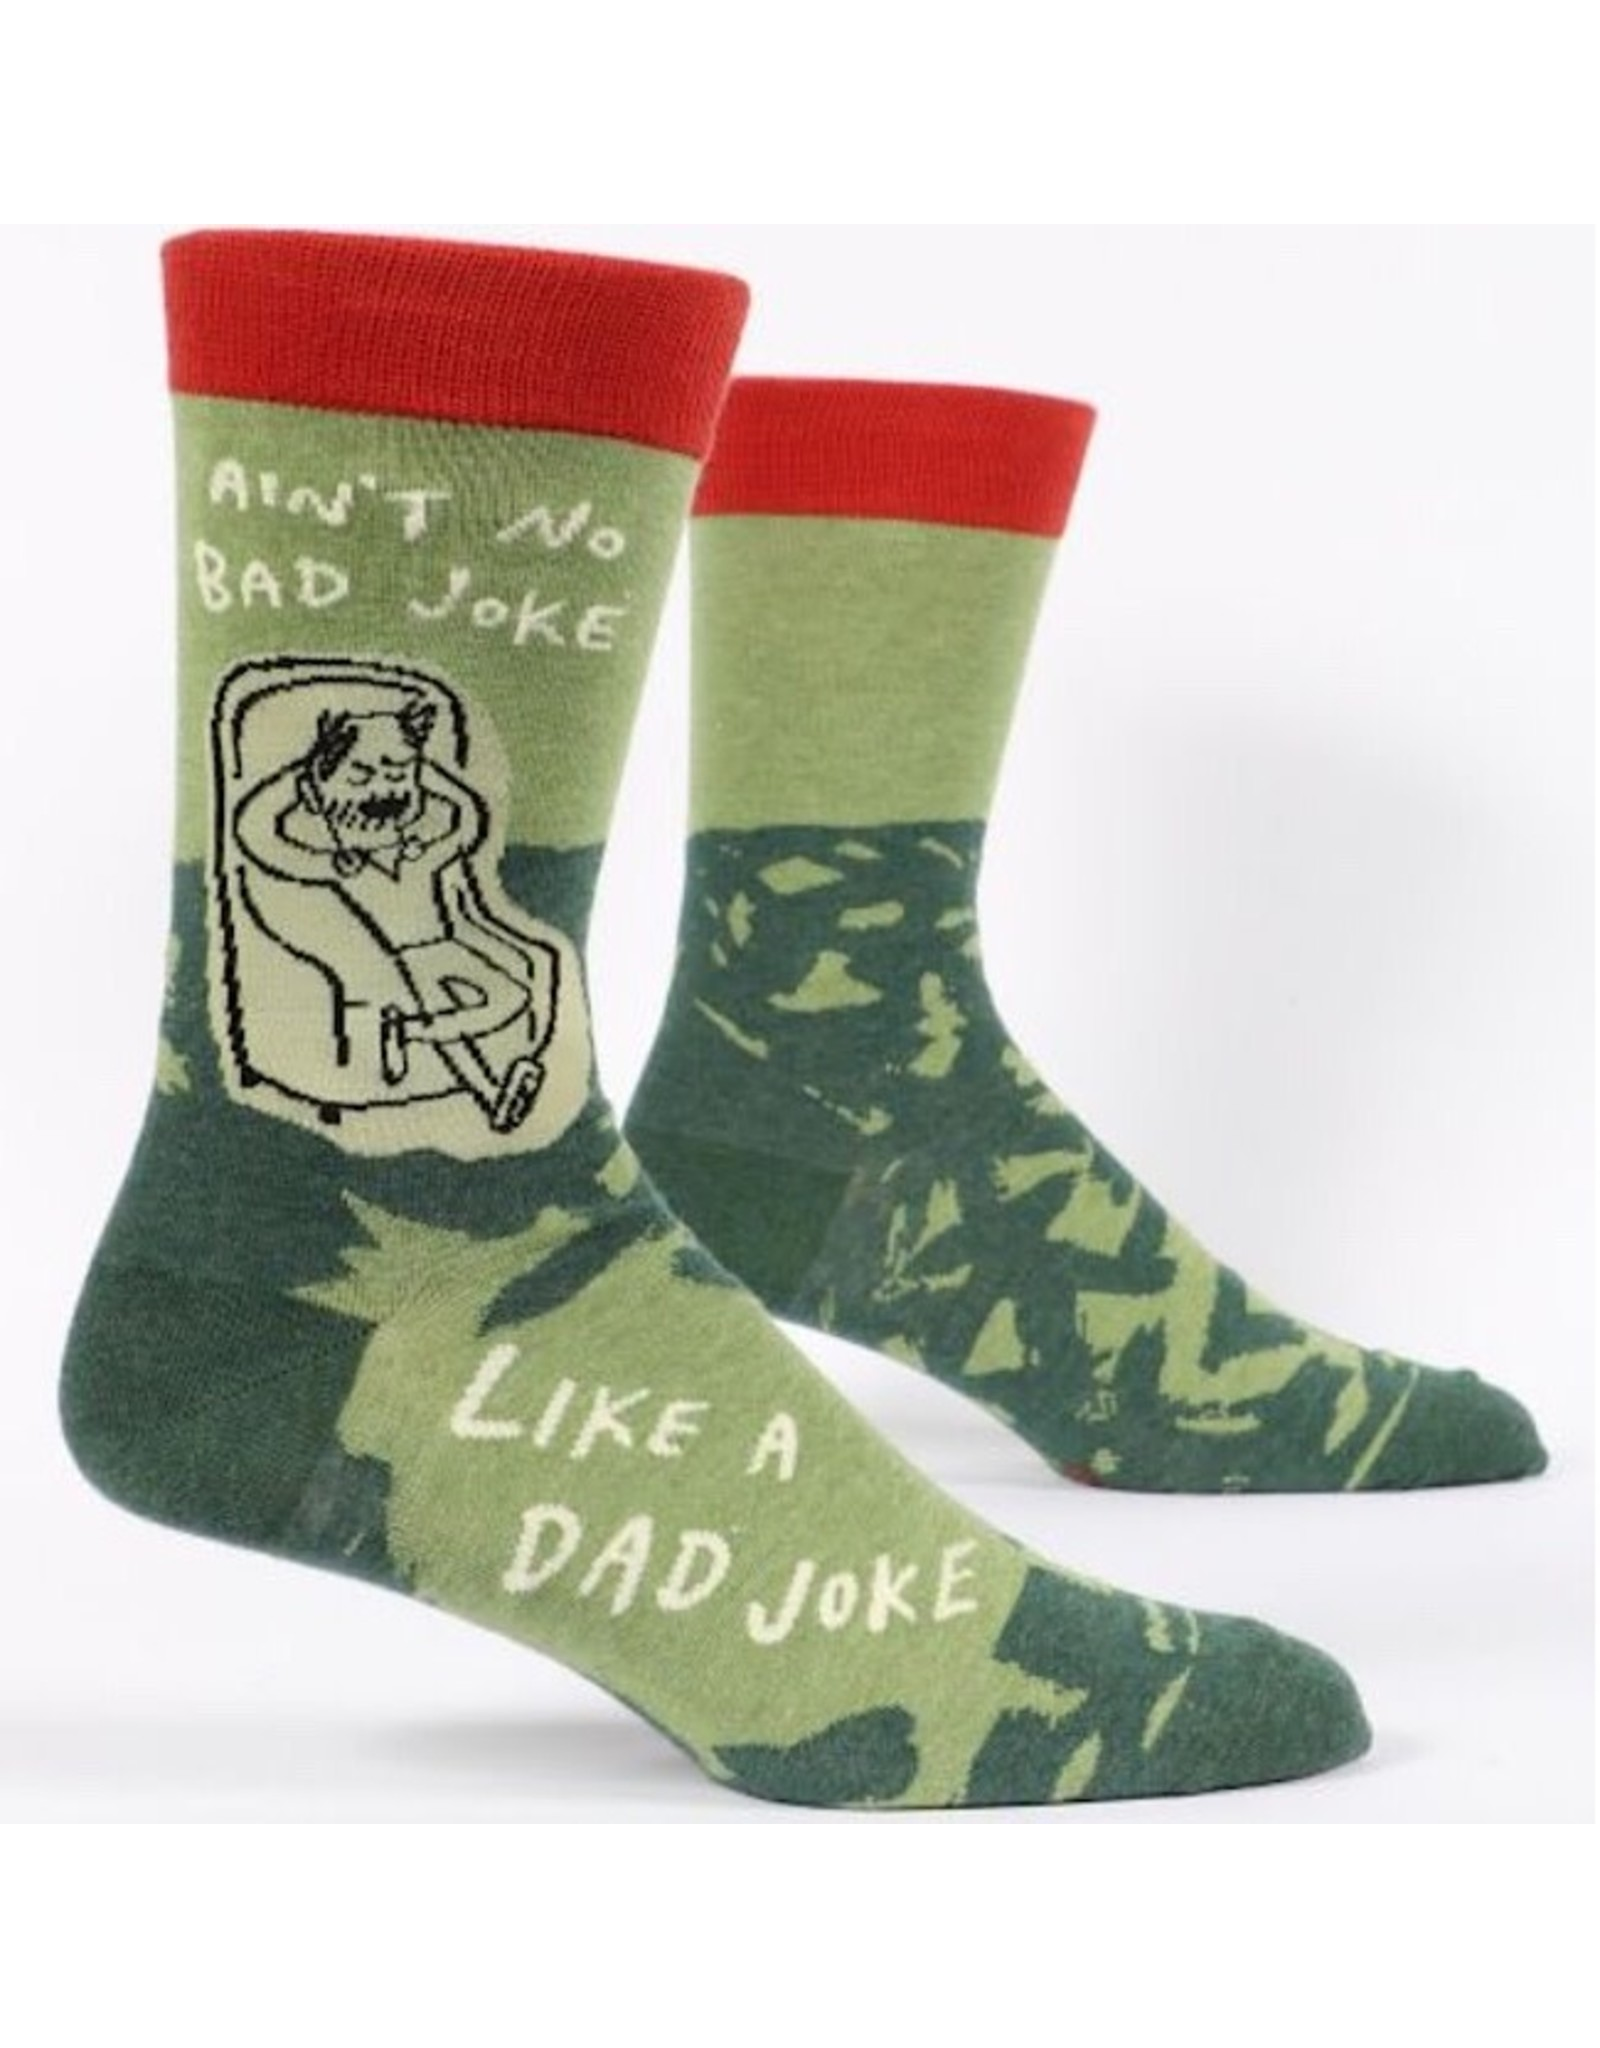 Socks (Mens)  - Ain't No Bad Joke, Like A Dad Joke